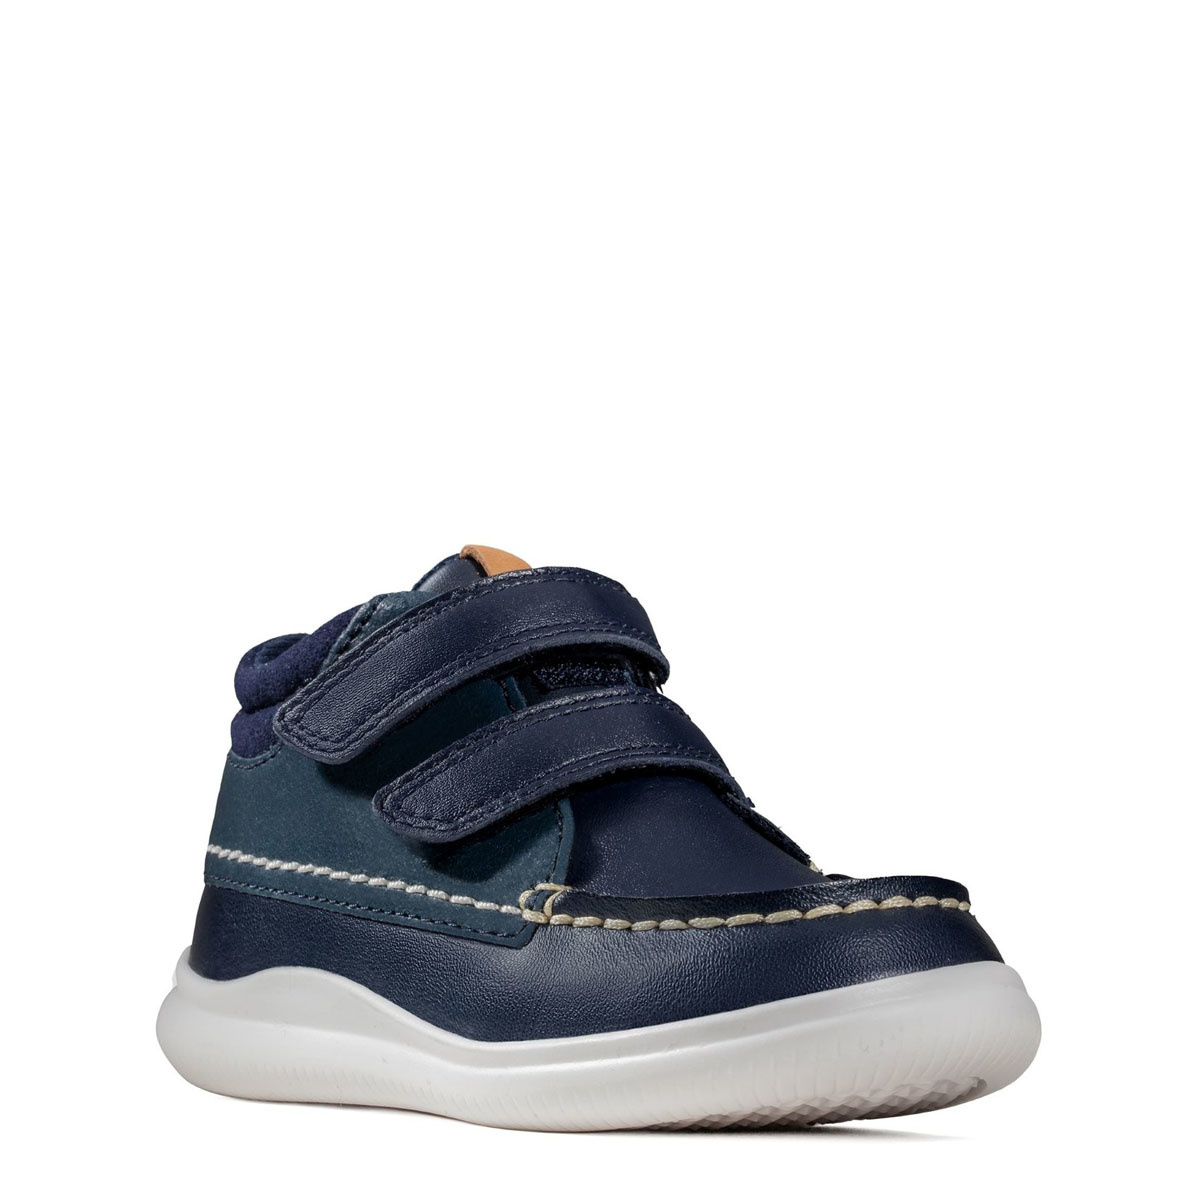 Clarks Cloud Tuktu Navy